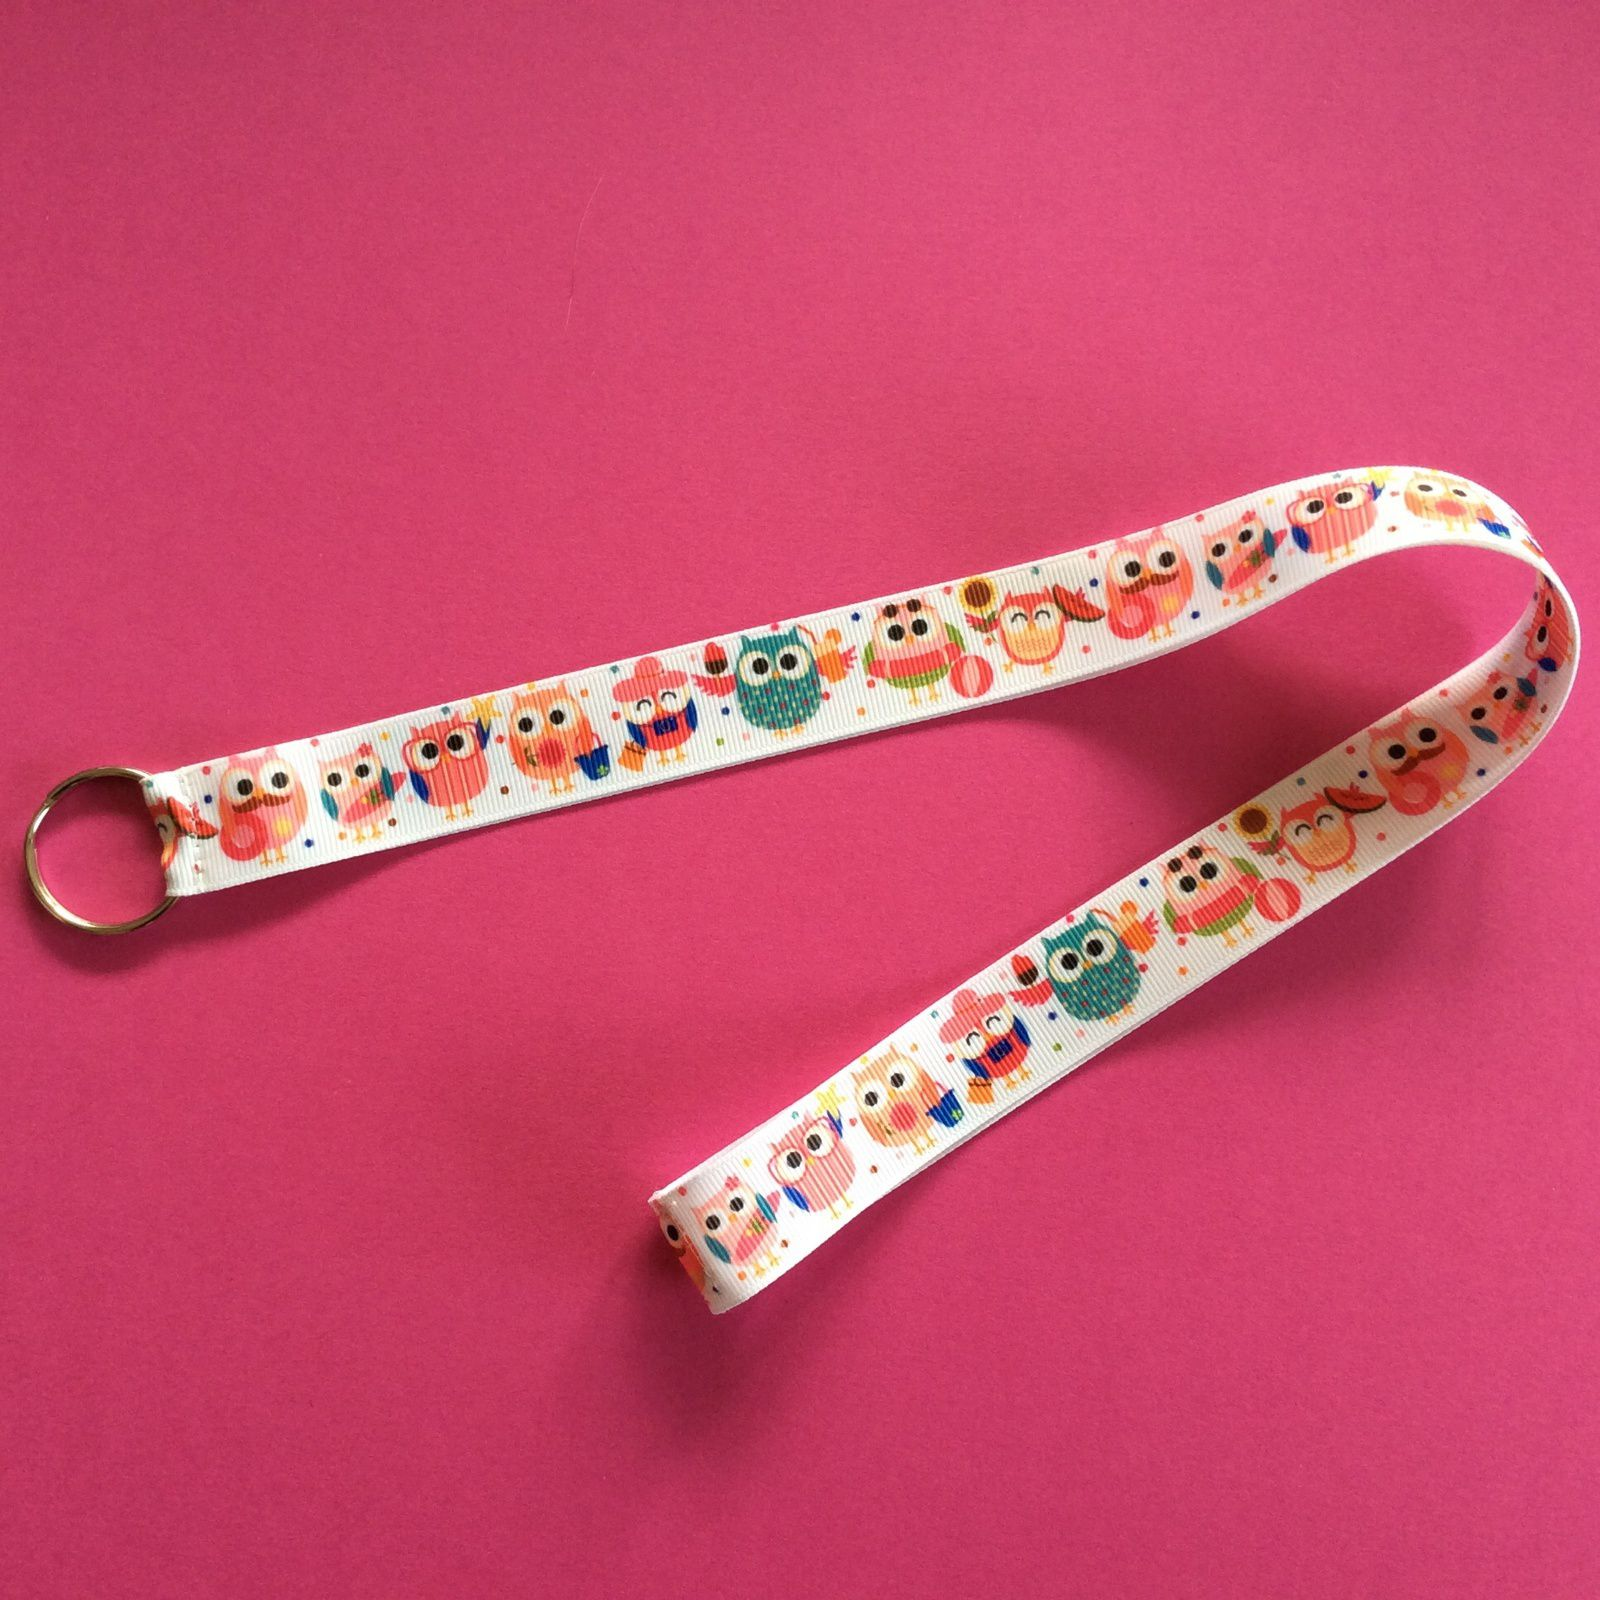 Porte-clefs, porte-badge